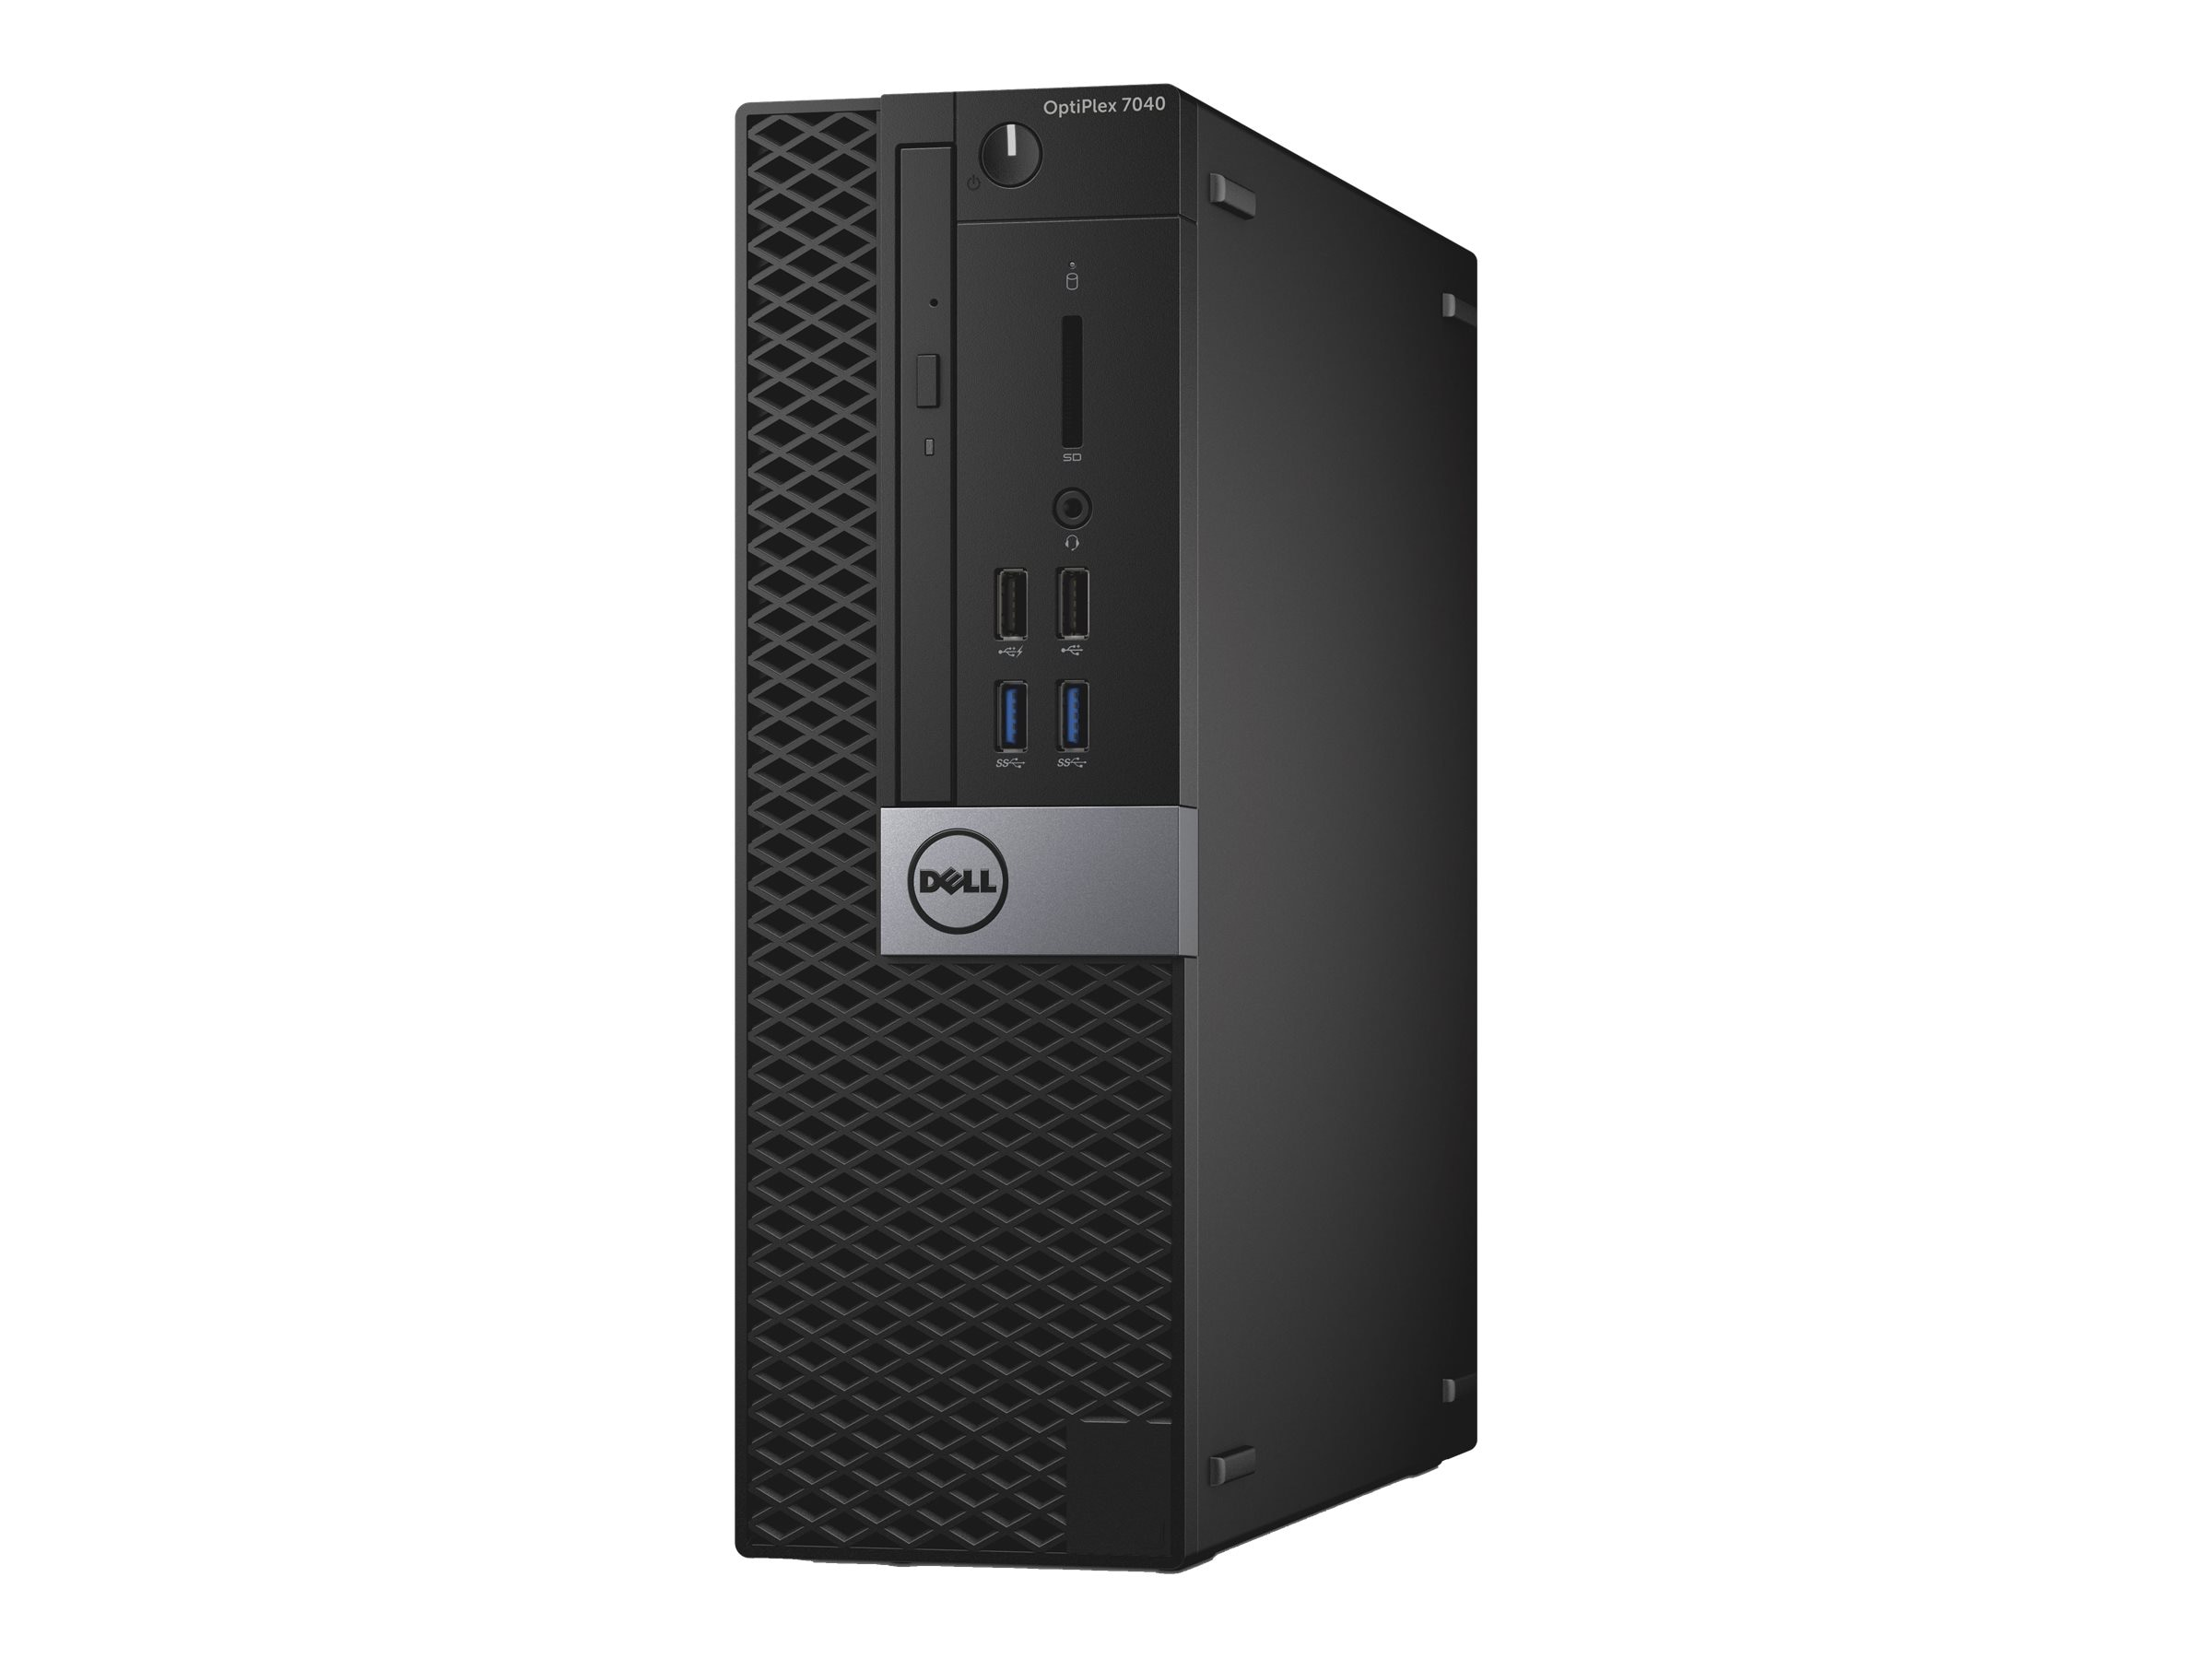 Dell OptiPlex 7040 3.4GHz Core i7 8GB RAM 500GB hard drive, 0P00K, 30819244, Desktops